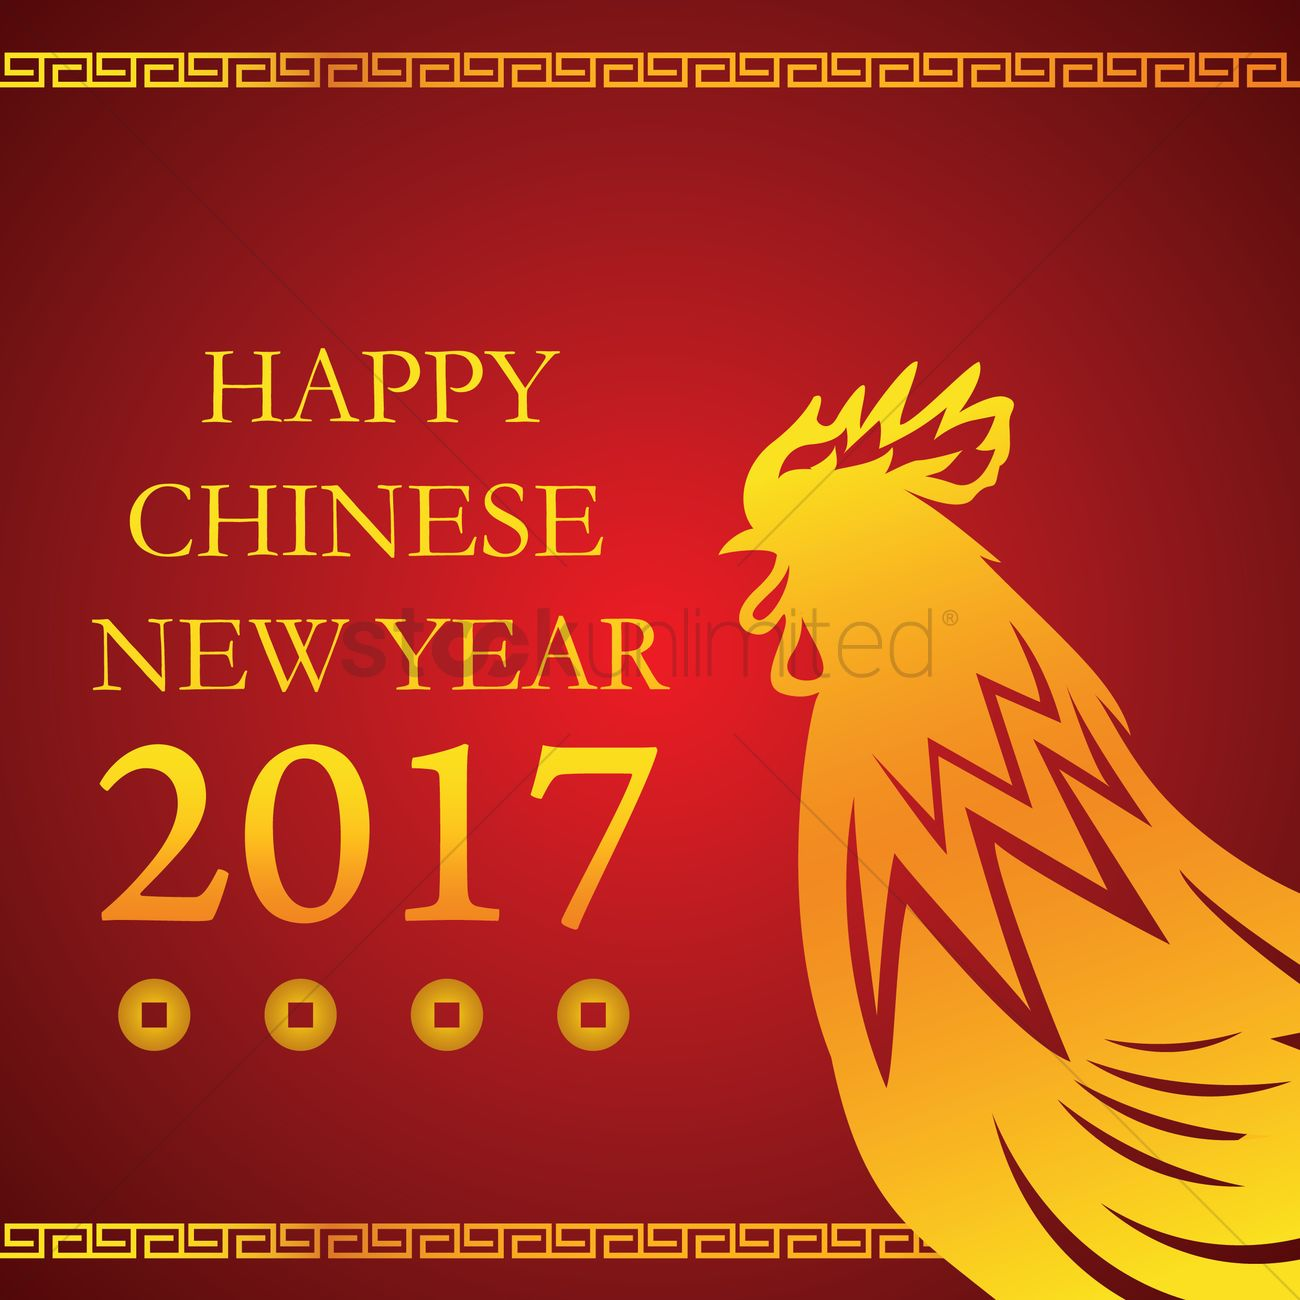 happy chinese new year 2017 with rooster vector graphic - When Is Chinese New Year 2017